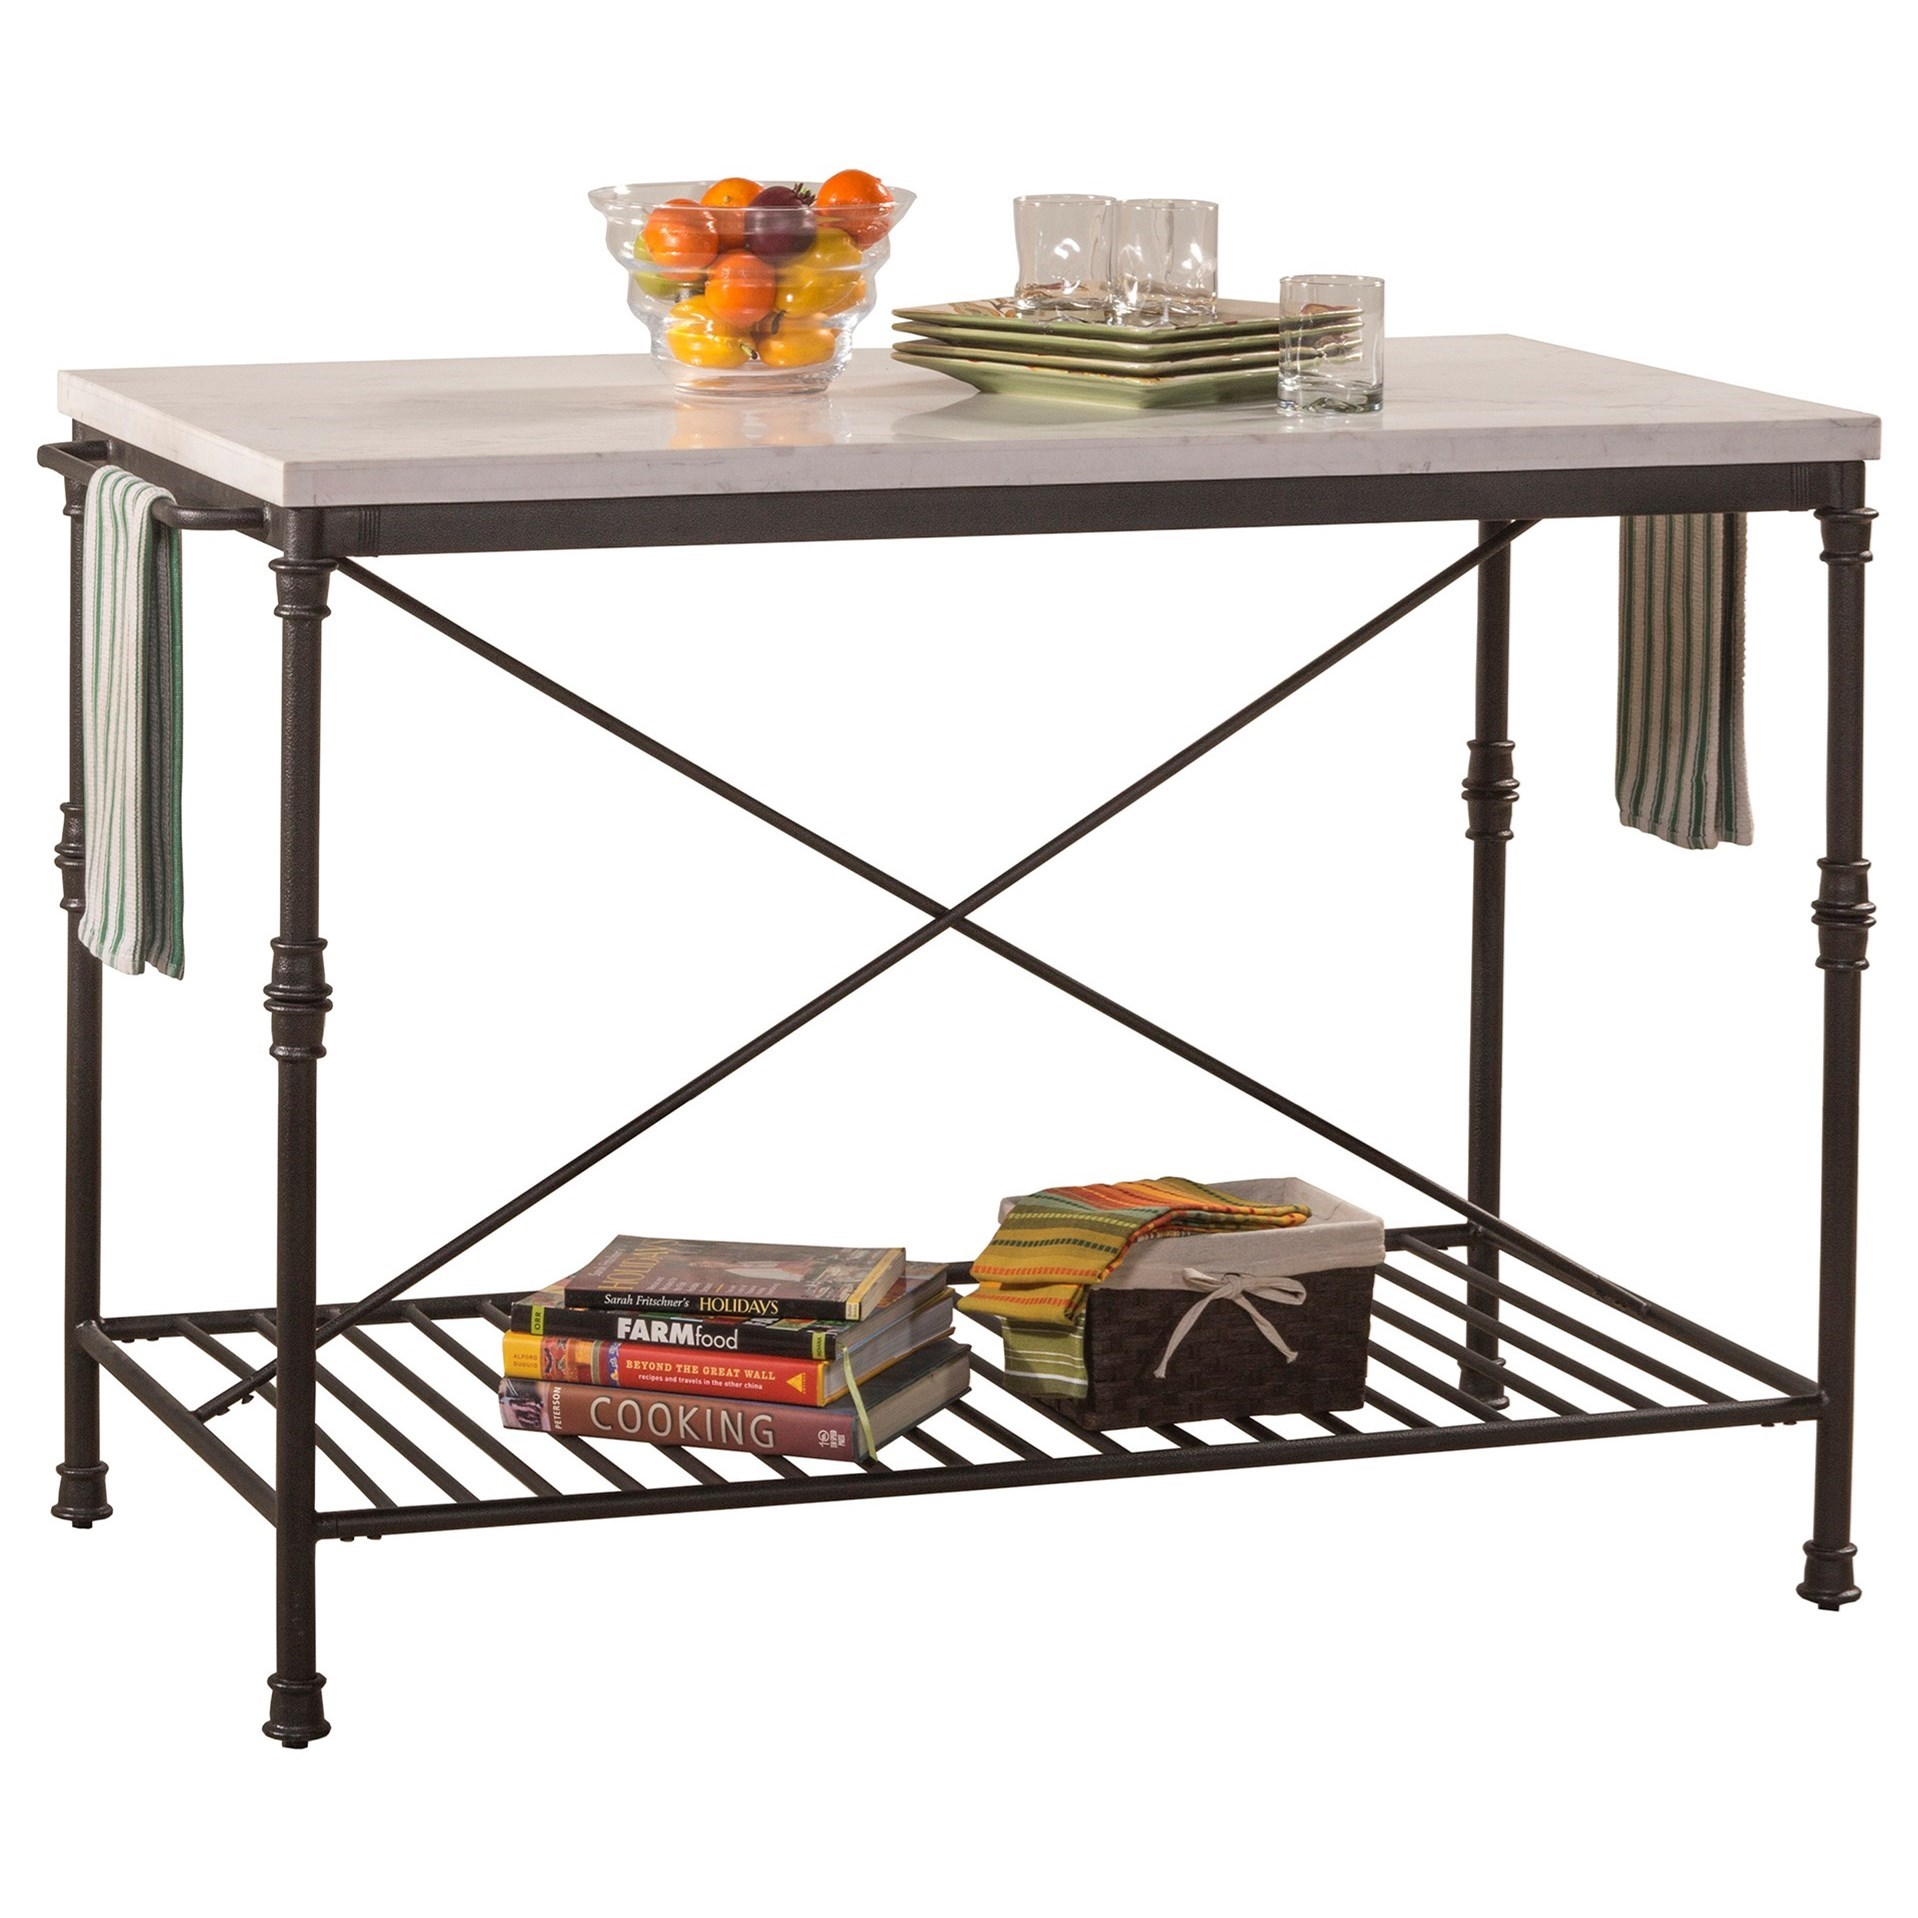 Accents Metal Kitchen Island by Hillsdale at Carolina Direct